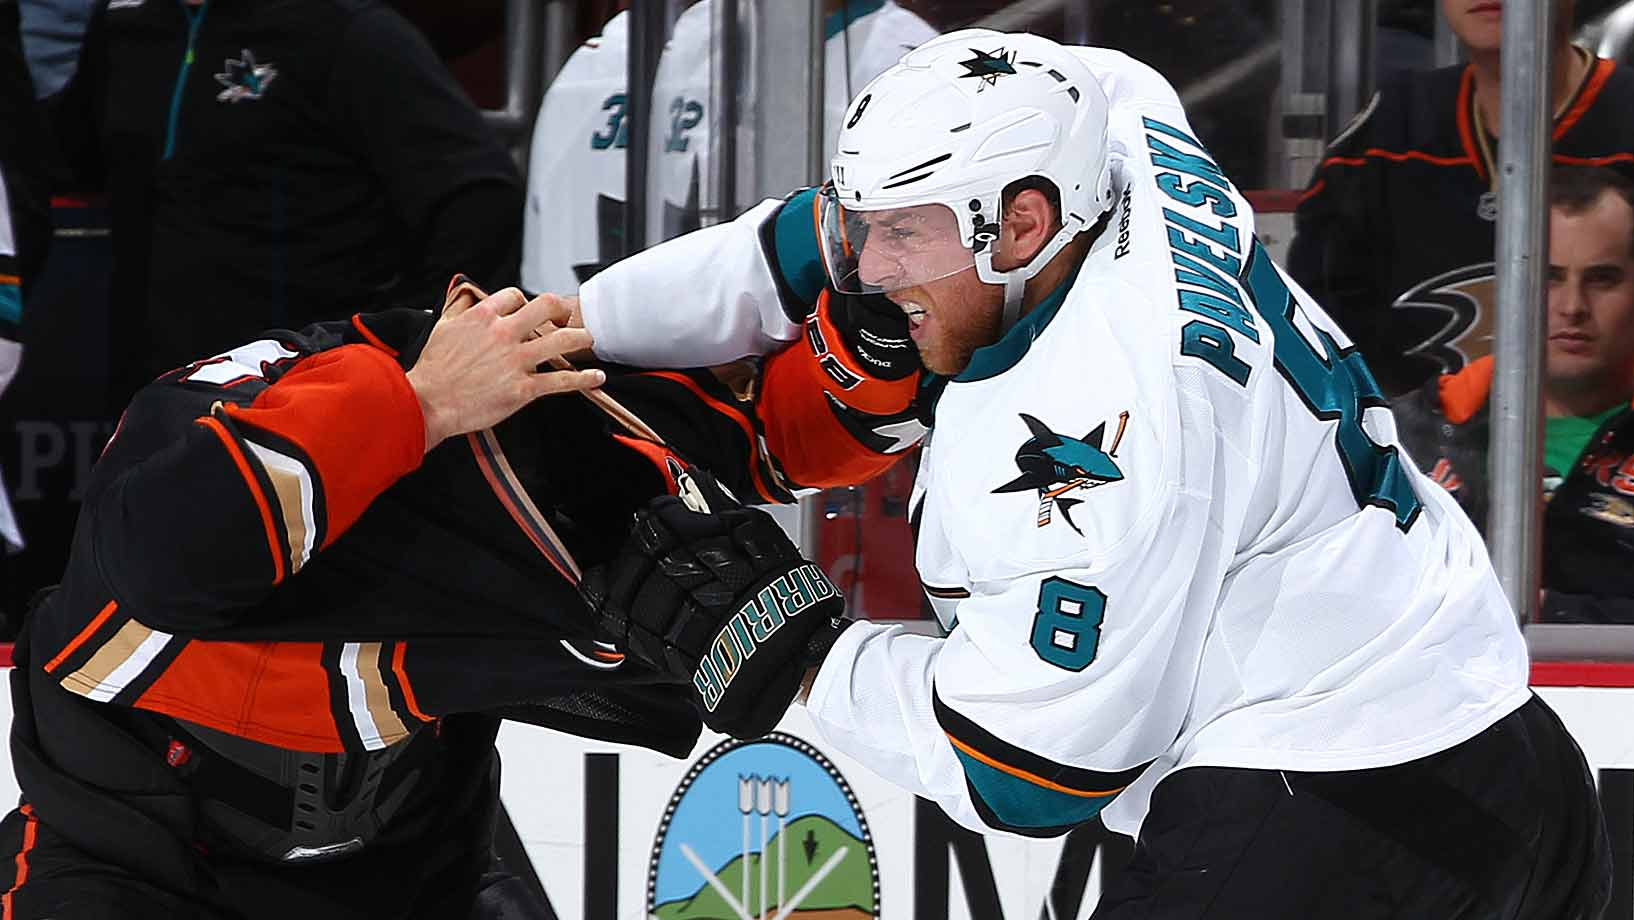 This Duck's head was apparently bitten off by a Shark during a scrap at Anaheim's Honda Center on Oct. 26.